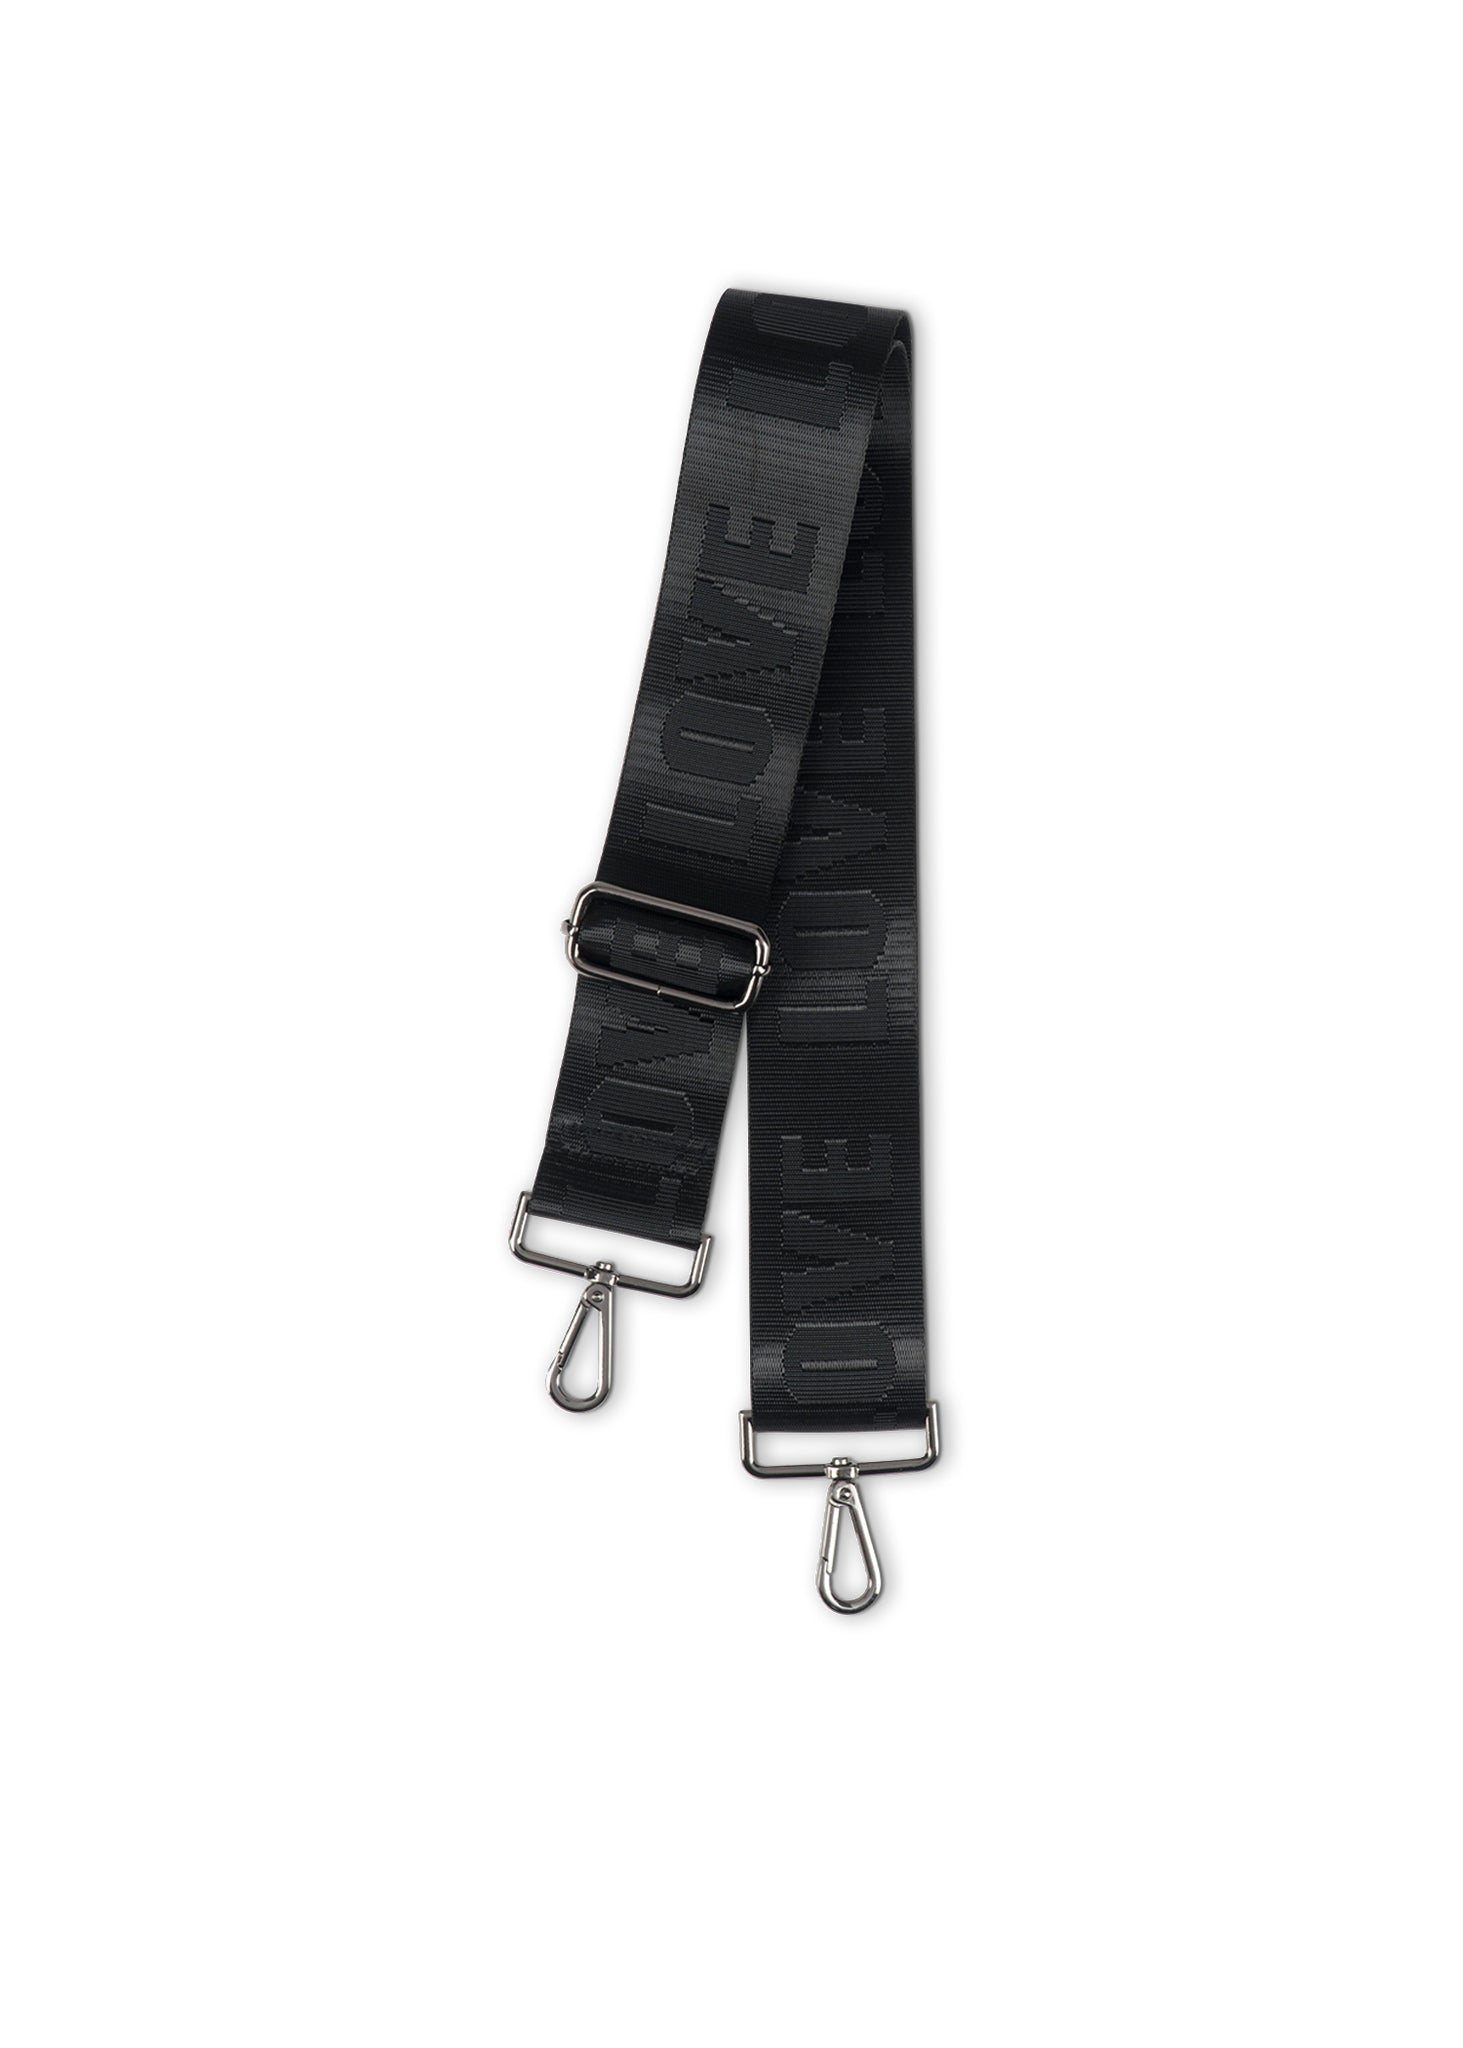 Black/Black LOVE Handbag Strap